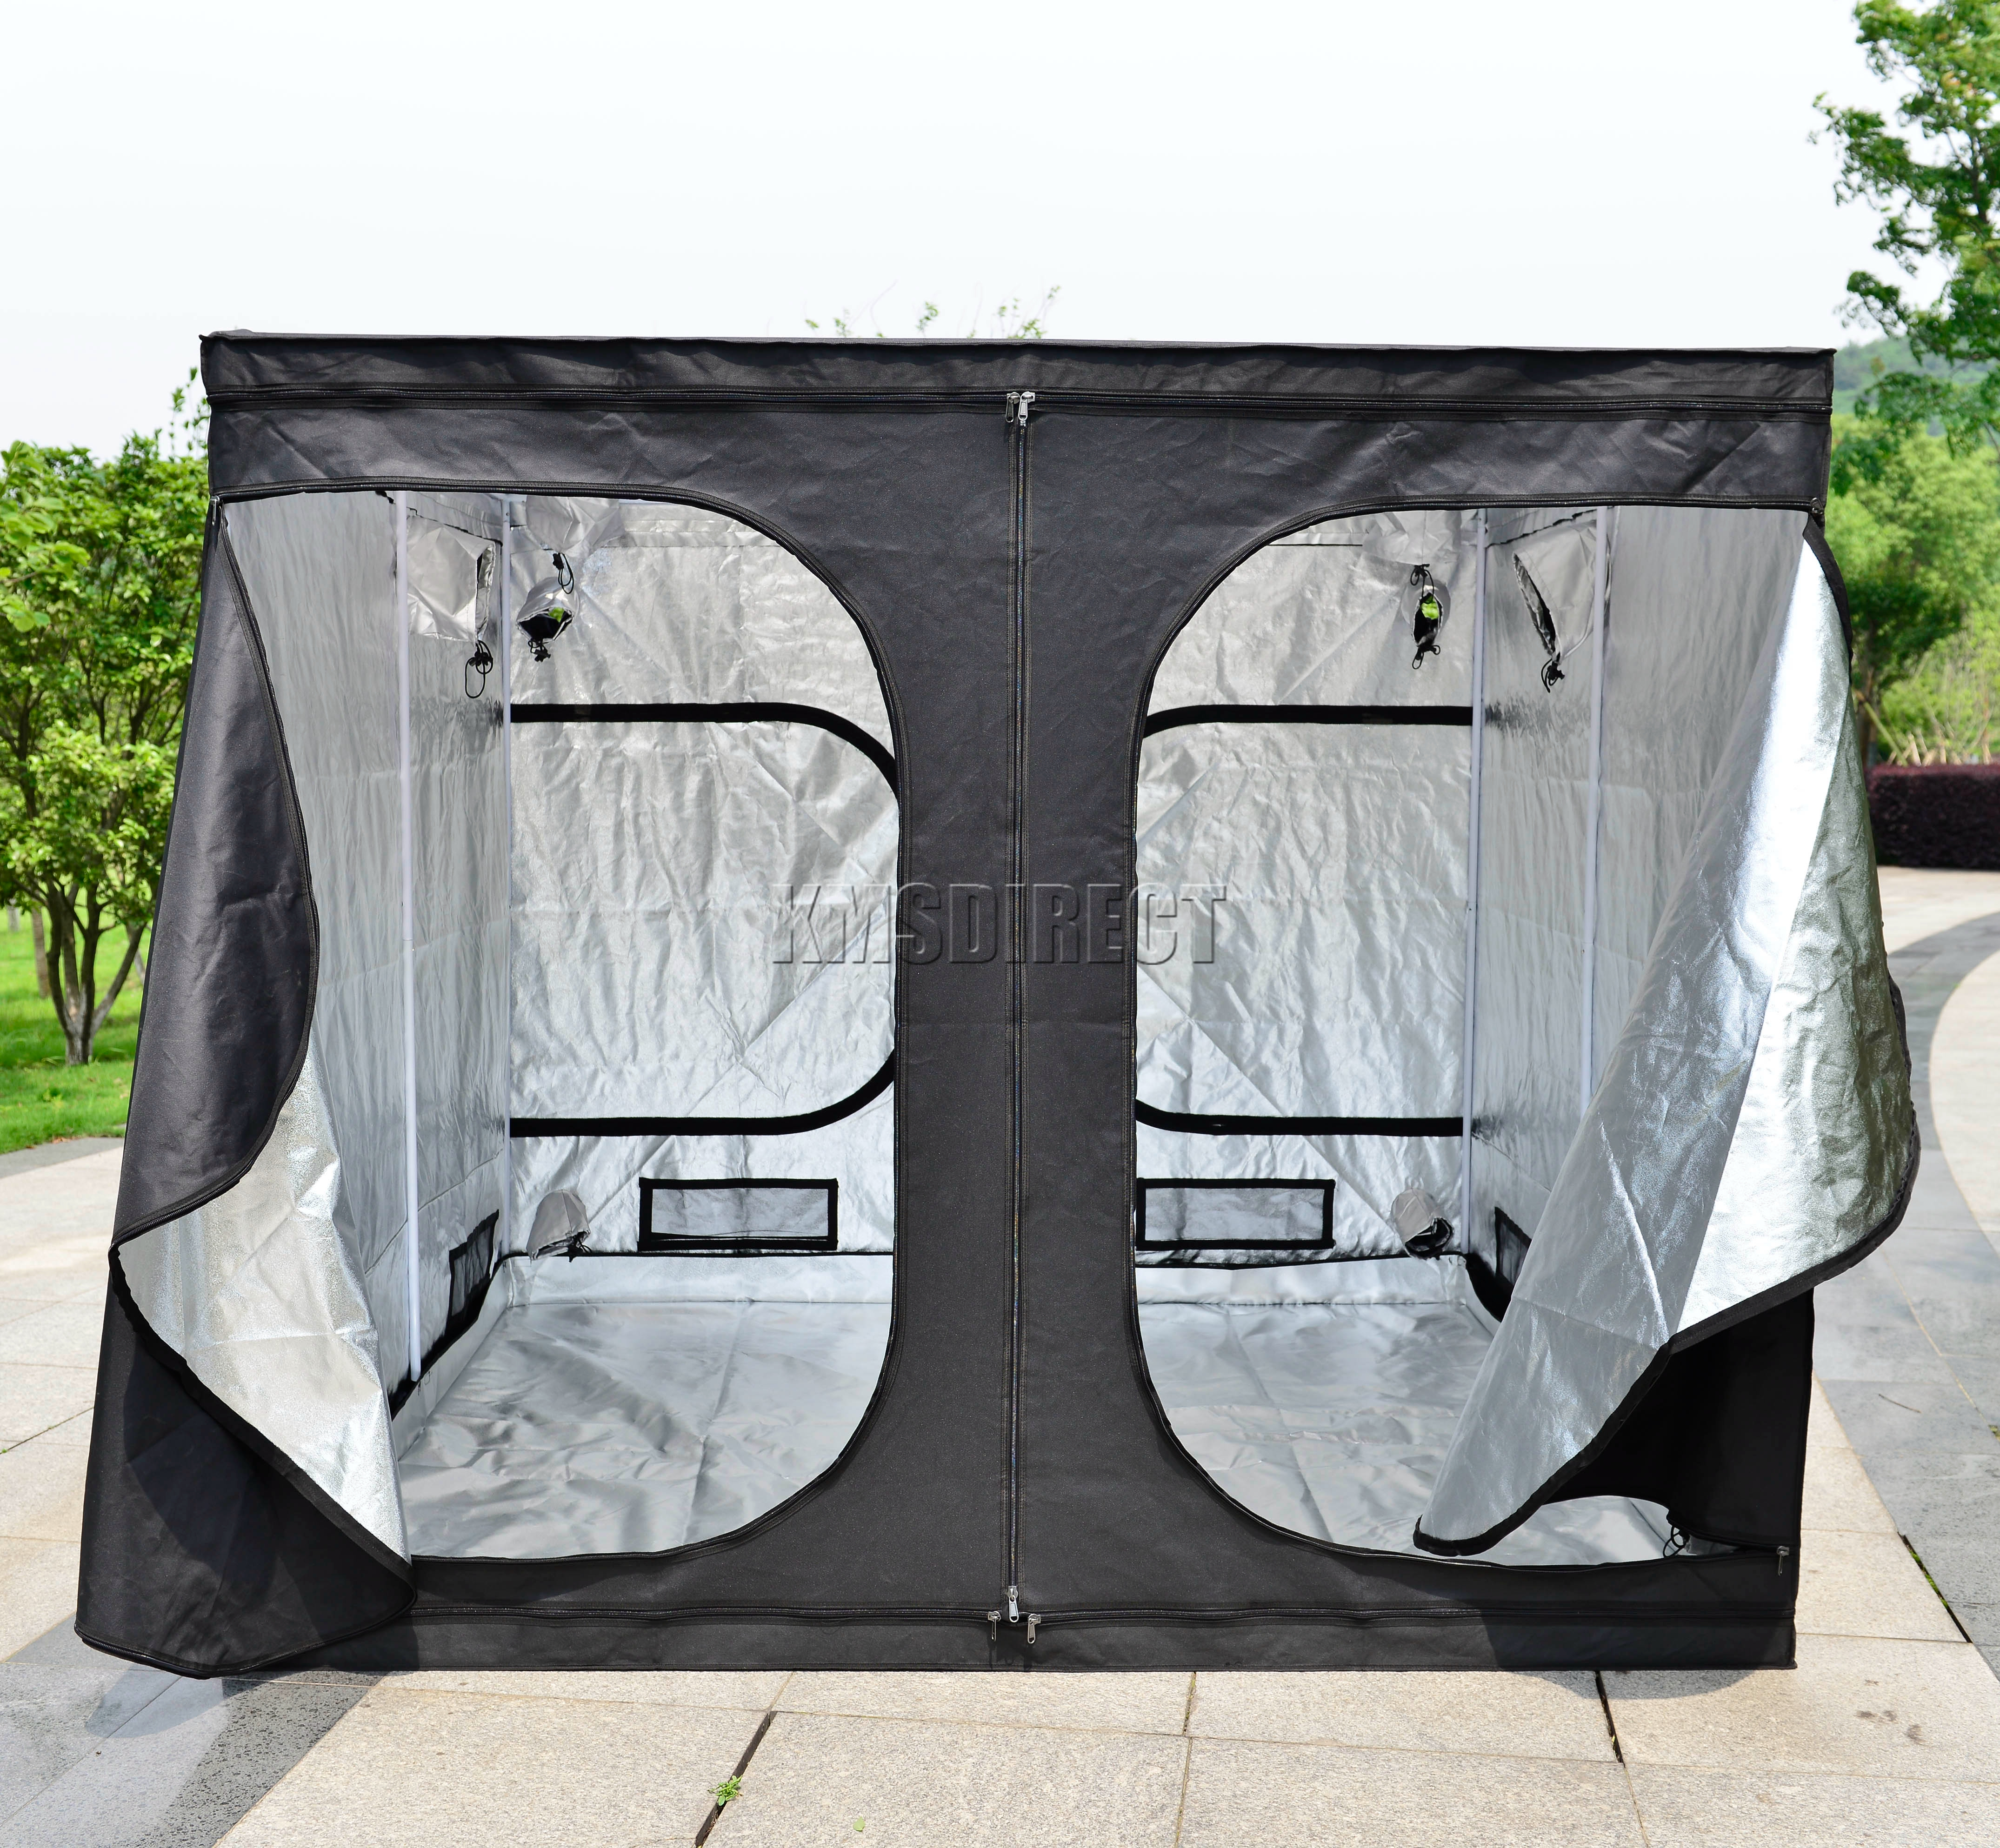 Innovations In Cing Coleman Carlsbad Dark Room Tent With & Dark Room Tent - Best Tent 2018